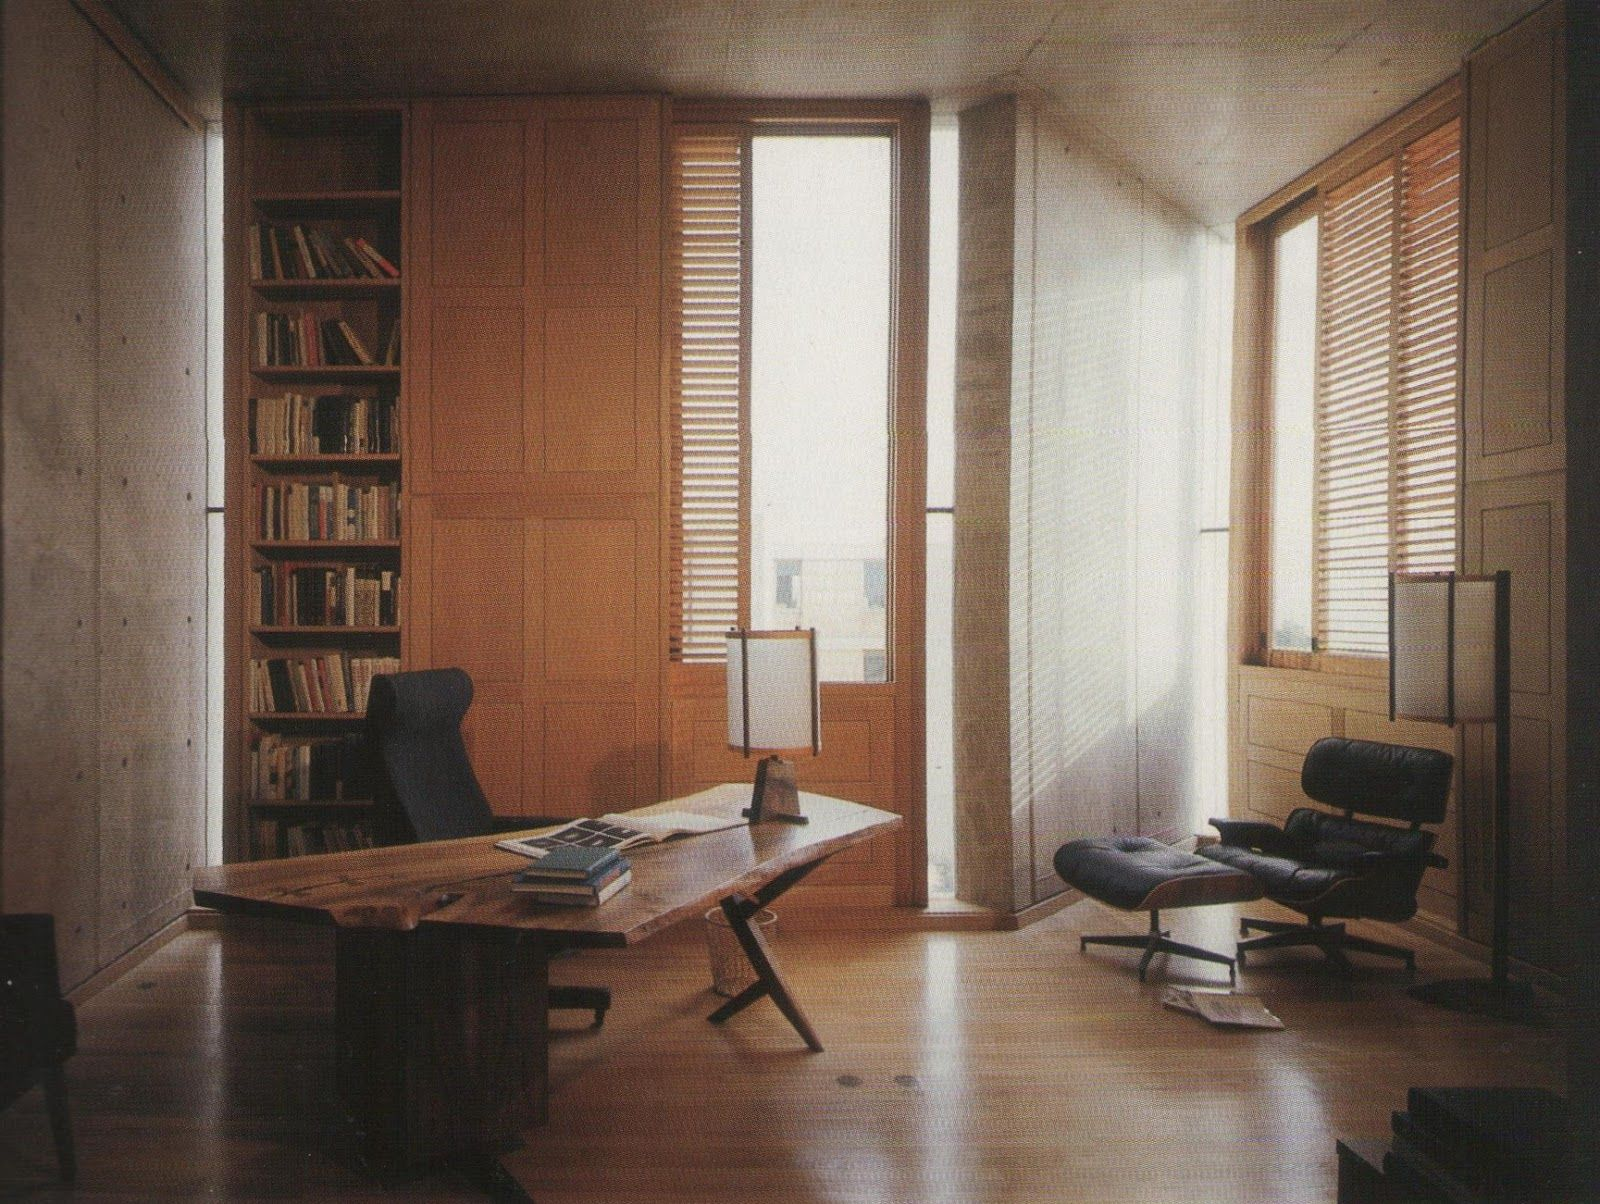 Louis kahn salk institute interior timber joinery for Decoracion casa judia